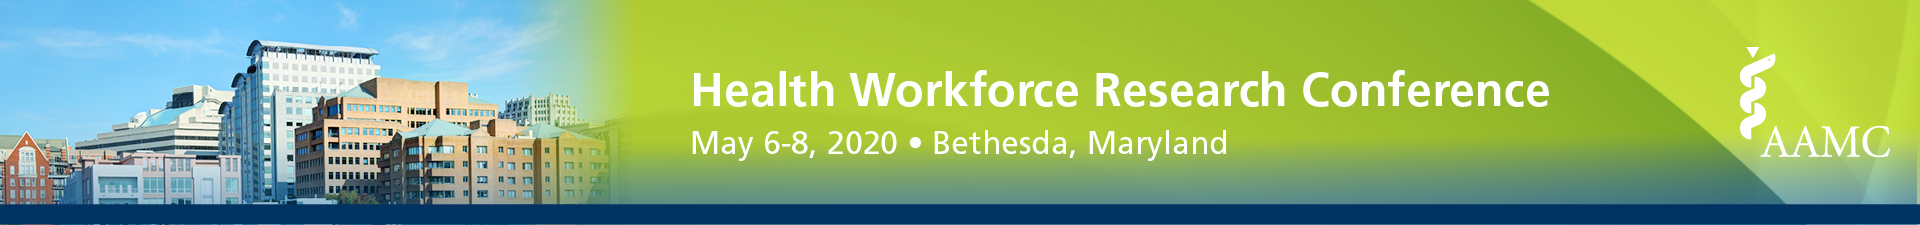 The 16th Annual AAMC Health Workforce Research Conference Event Banner